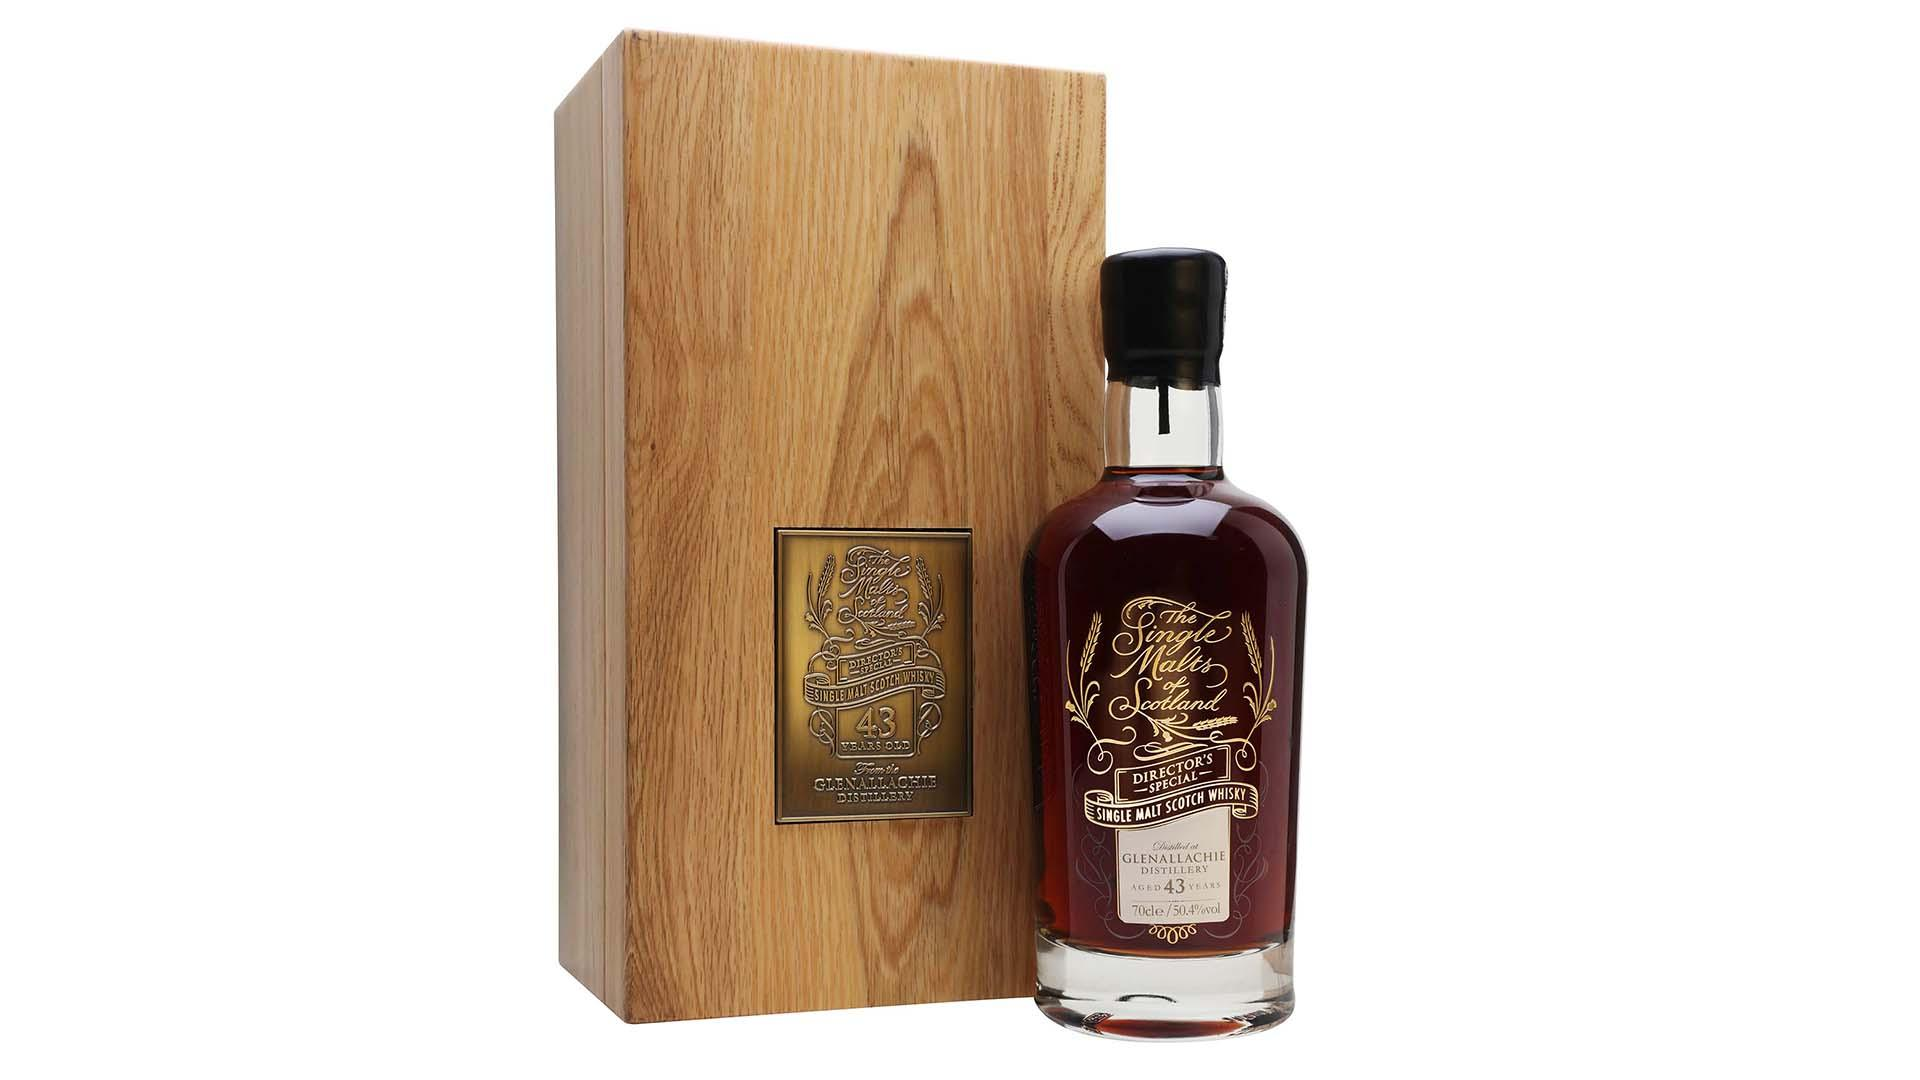 Glenallachie 43 Year Old | Sherry Cask Director's Special